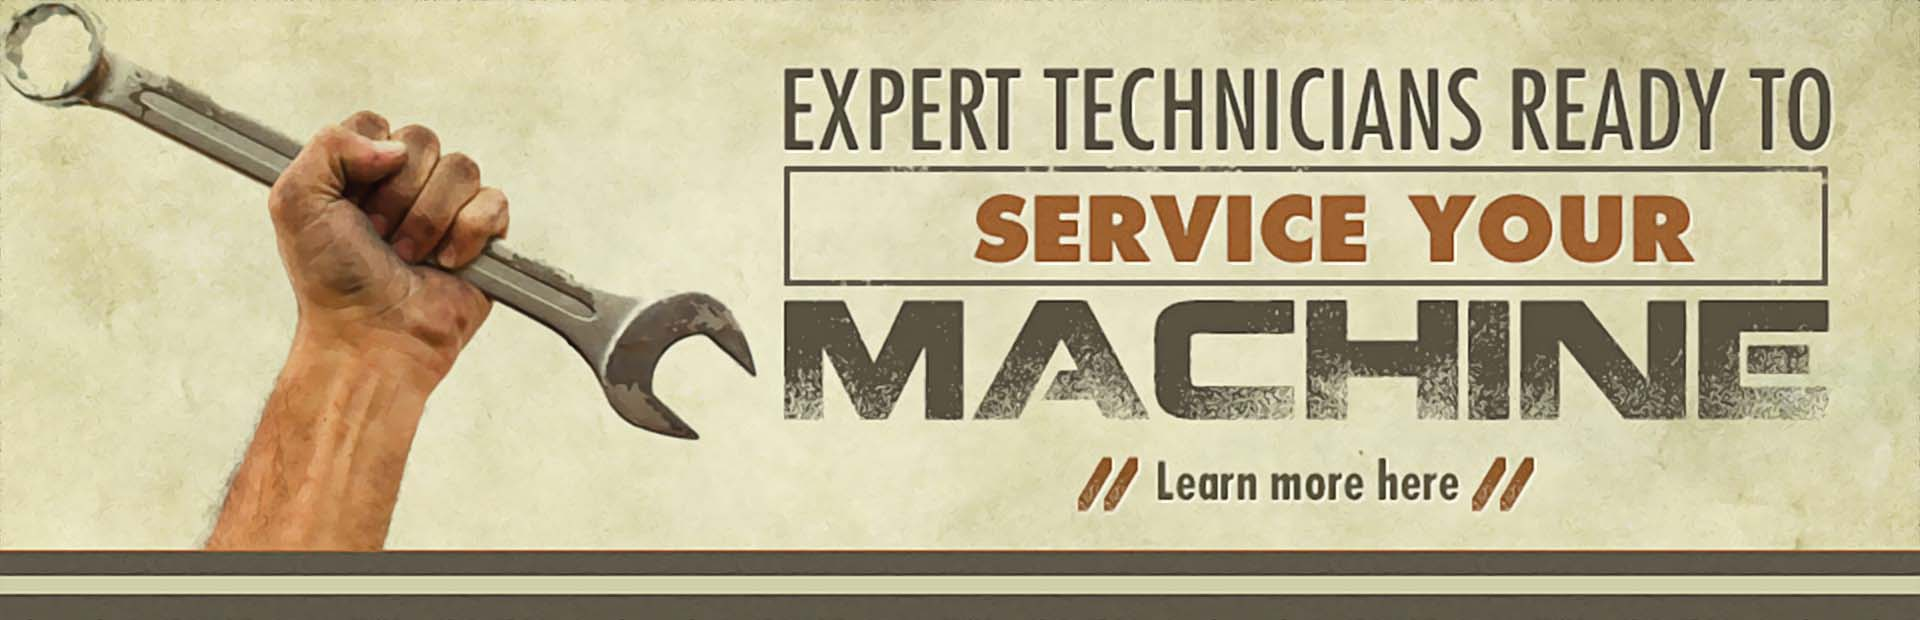 Expert Technicians Ready to Service Your Machine: Click here to learn more.